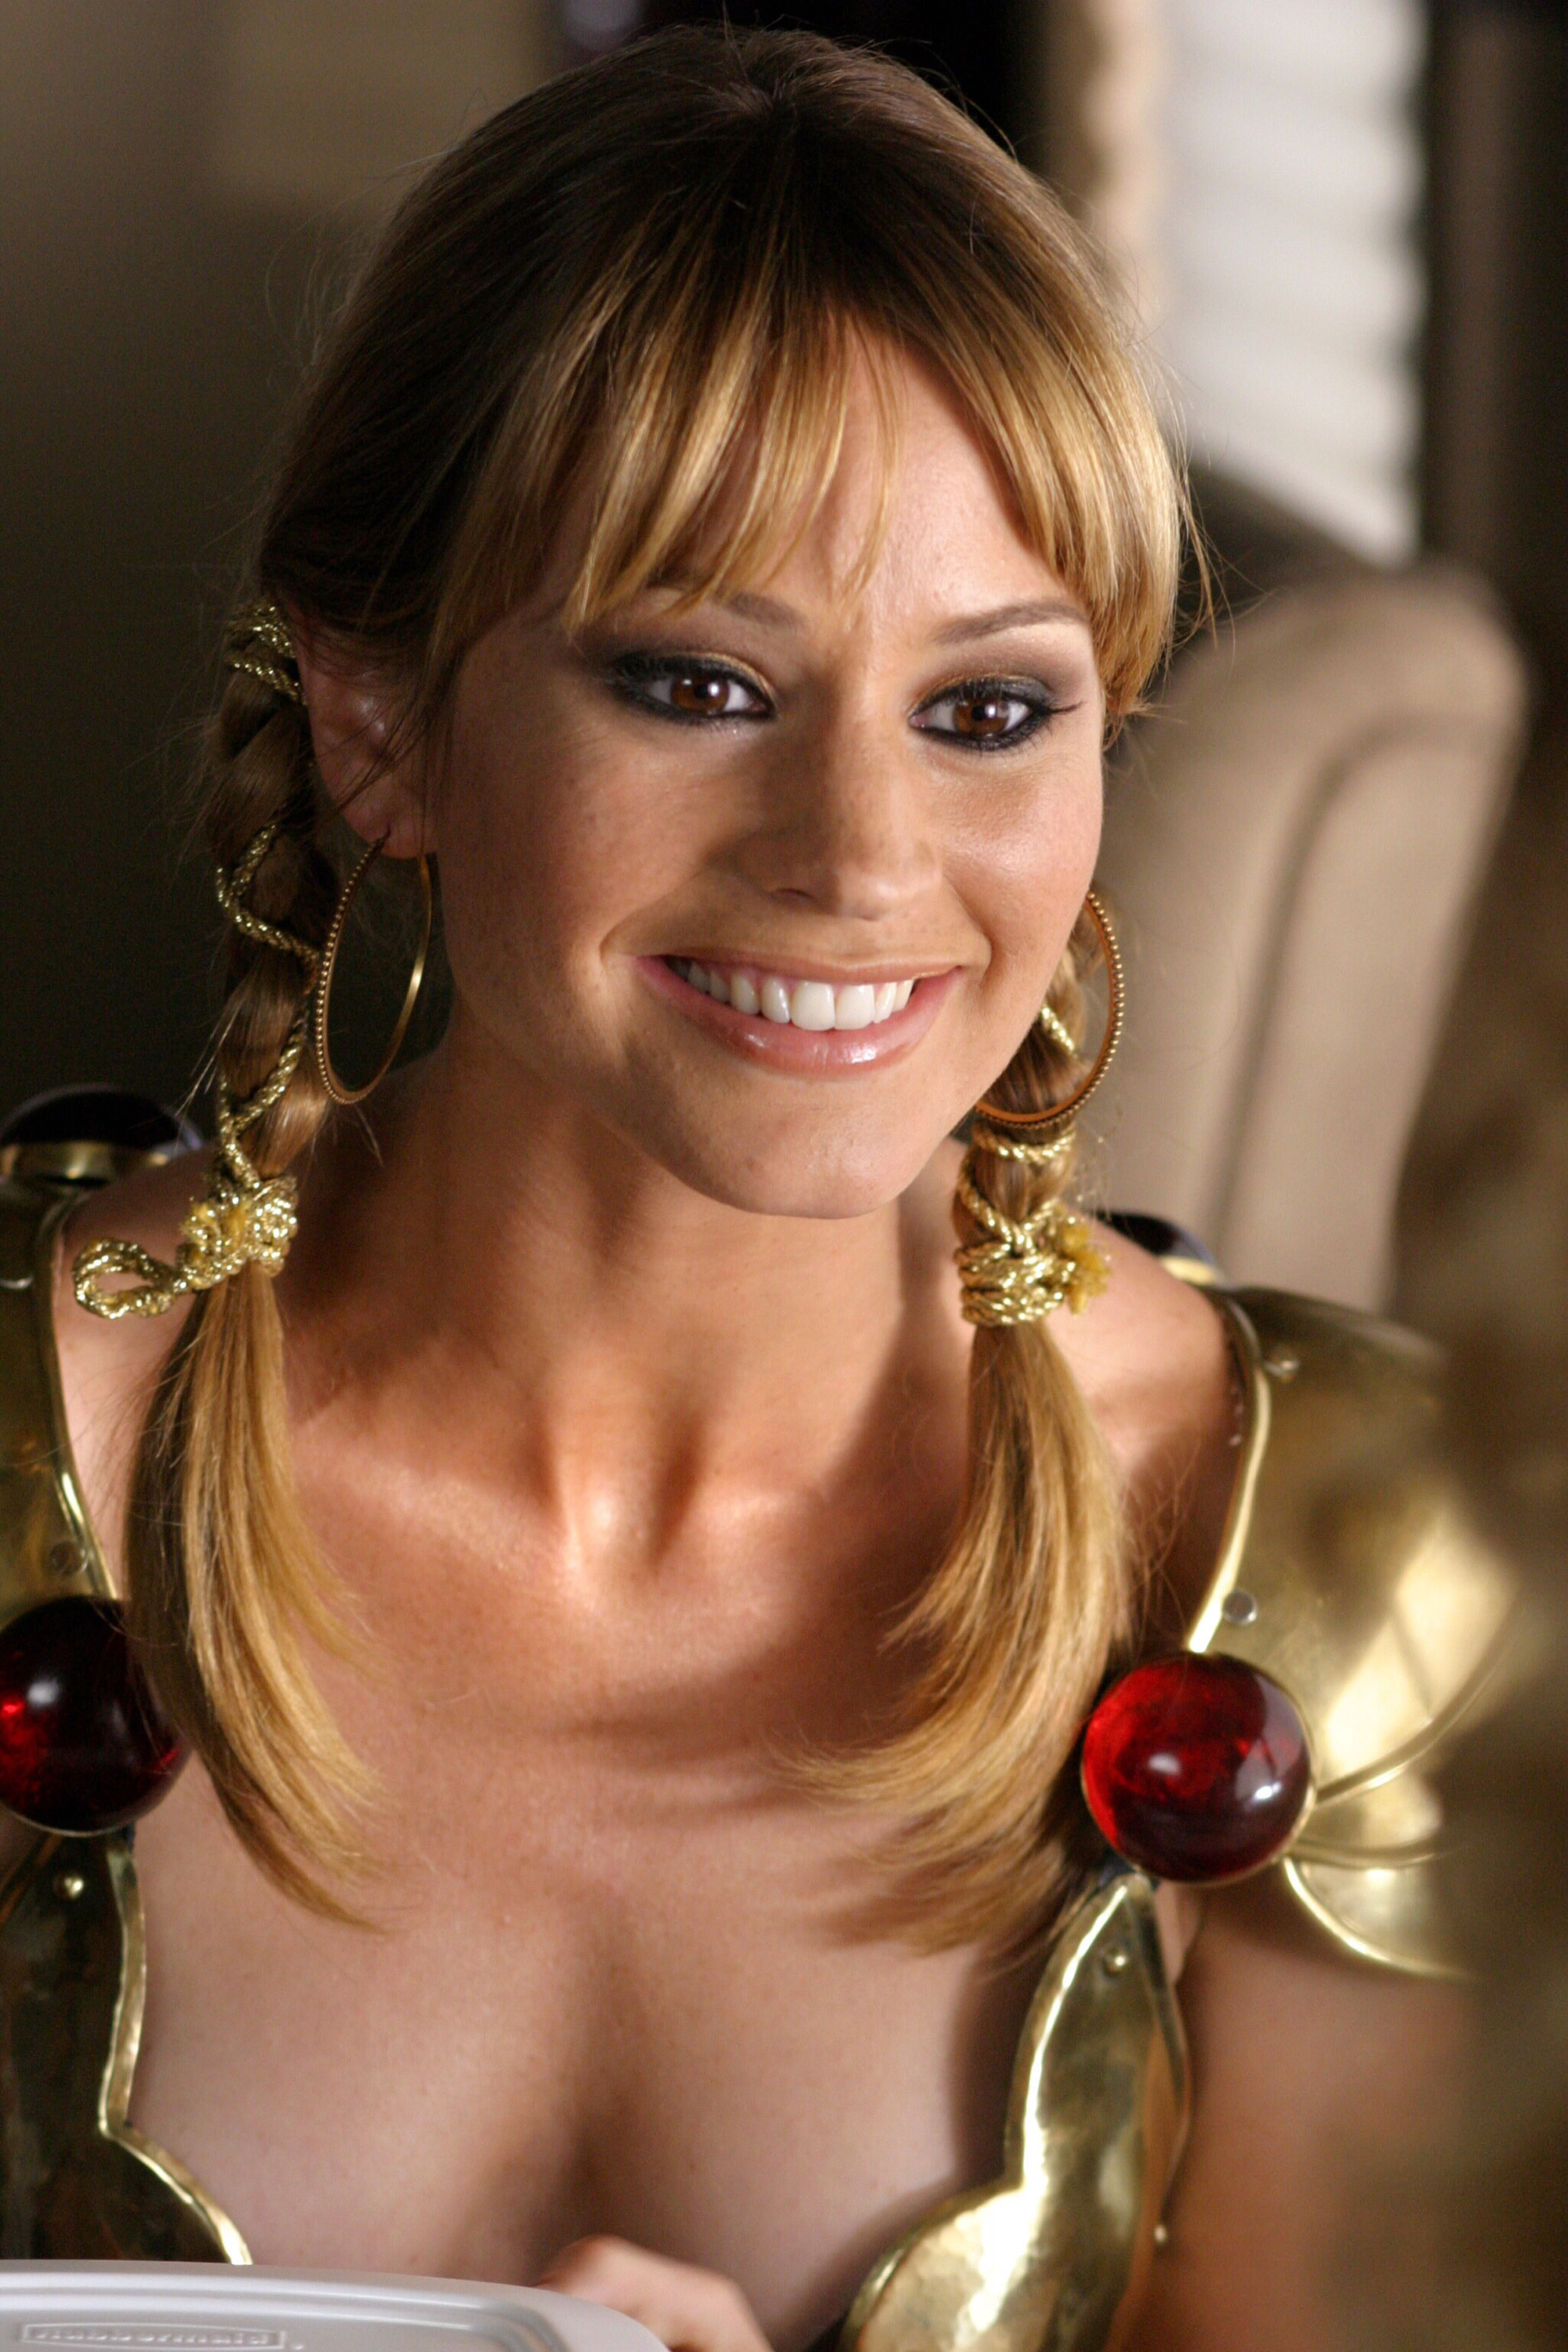 Cameron Richardson - Gallery Photo Colection